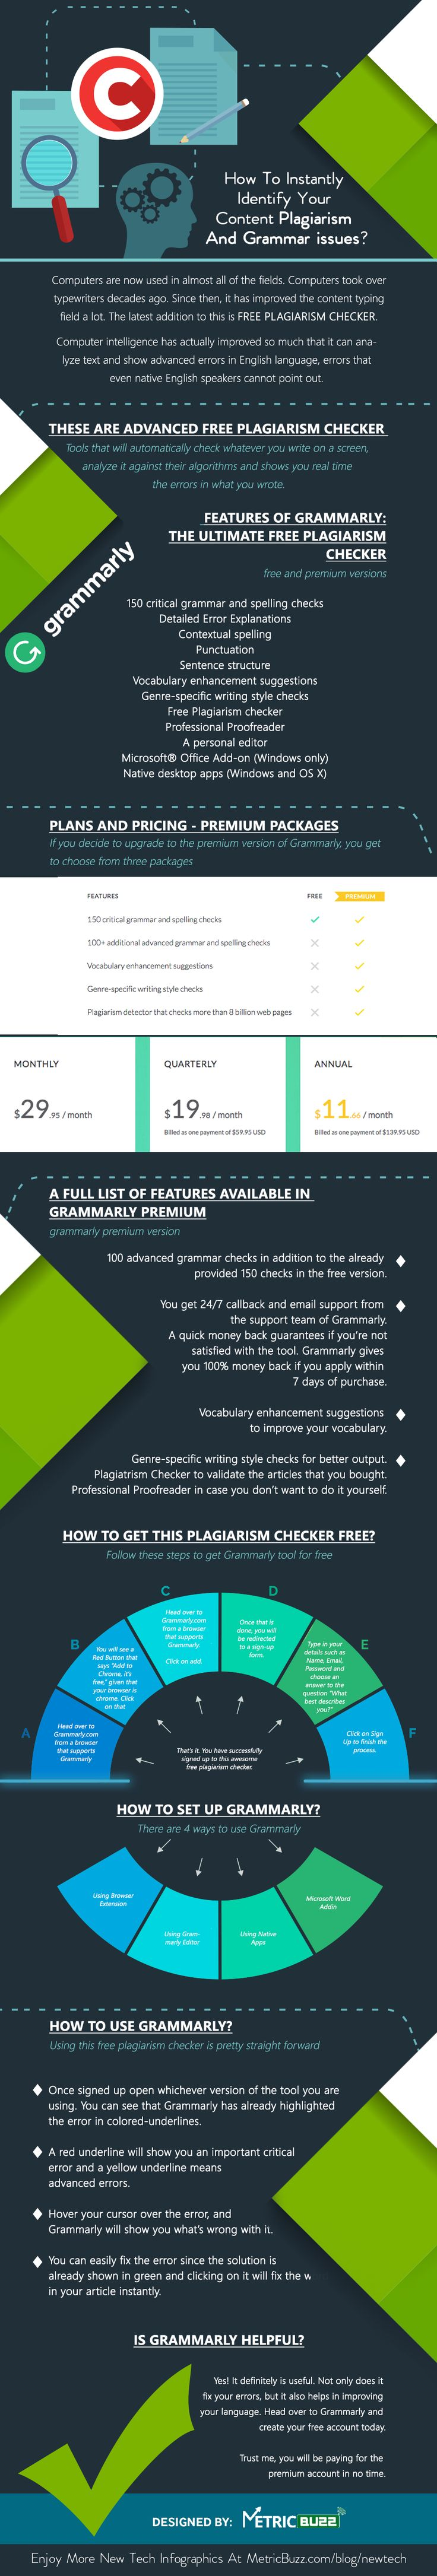 check your essay for plagiarism best ideas about plagiarism  17 best ideas about plagiarism checker check for plagiarism checker metricbuzz com blog plagiarism checker